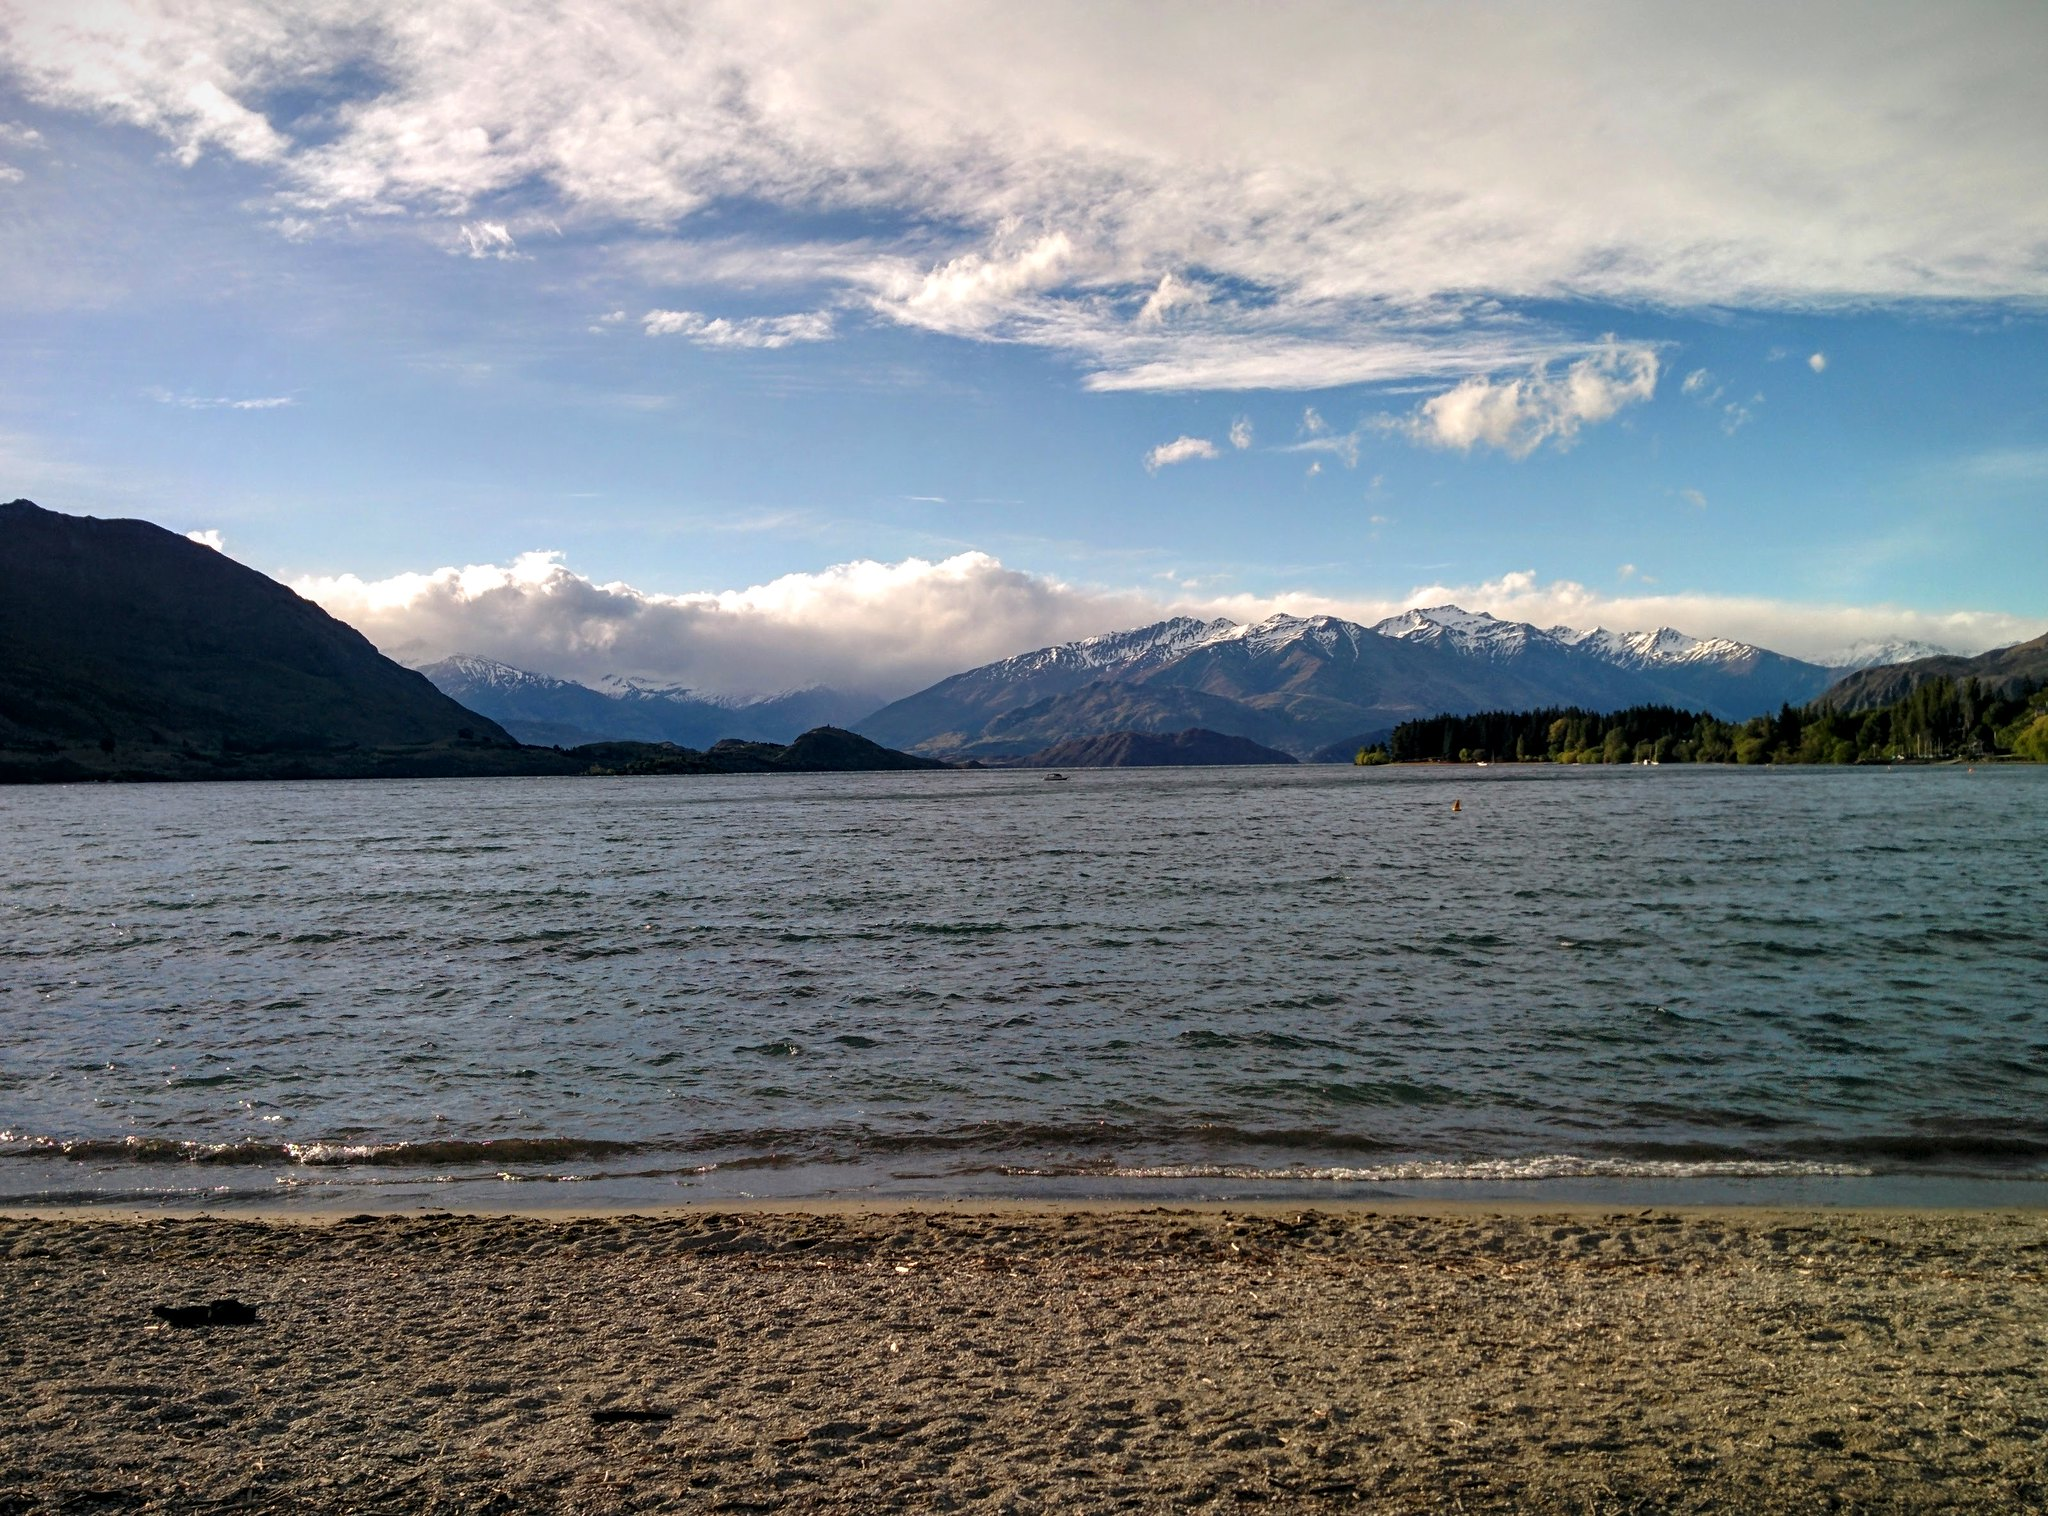 Mountains with Lake Wanaka in the foreground